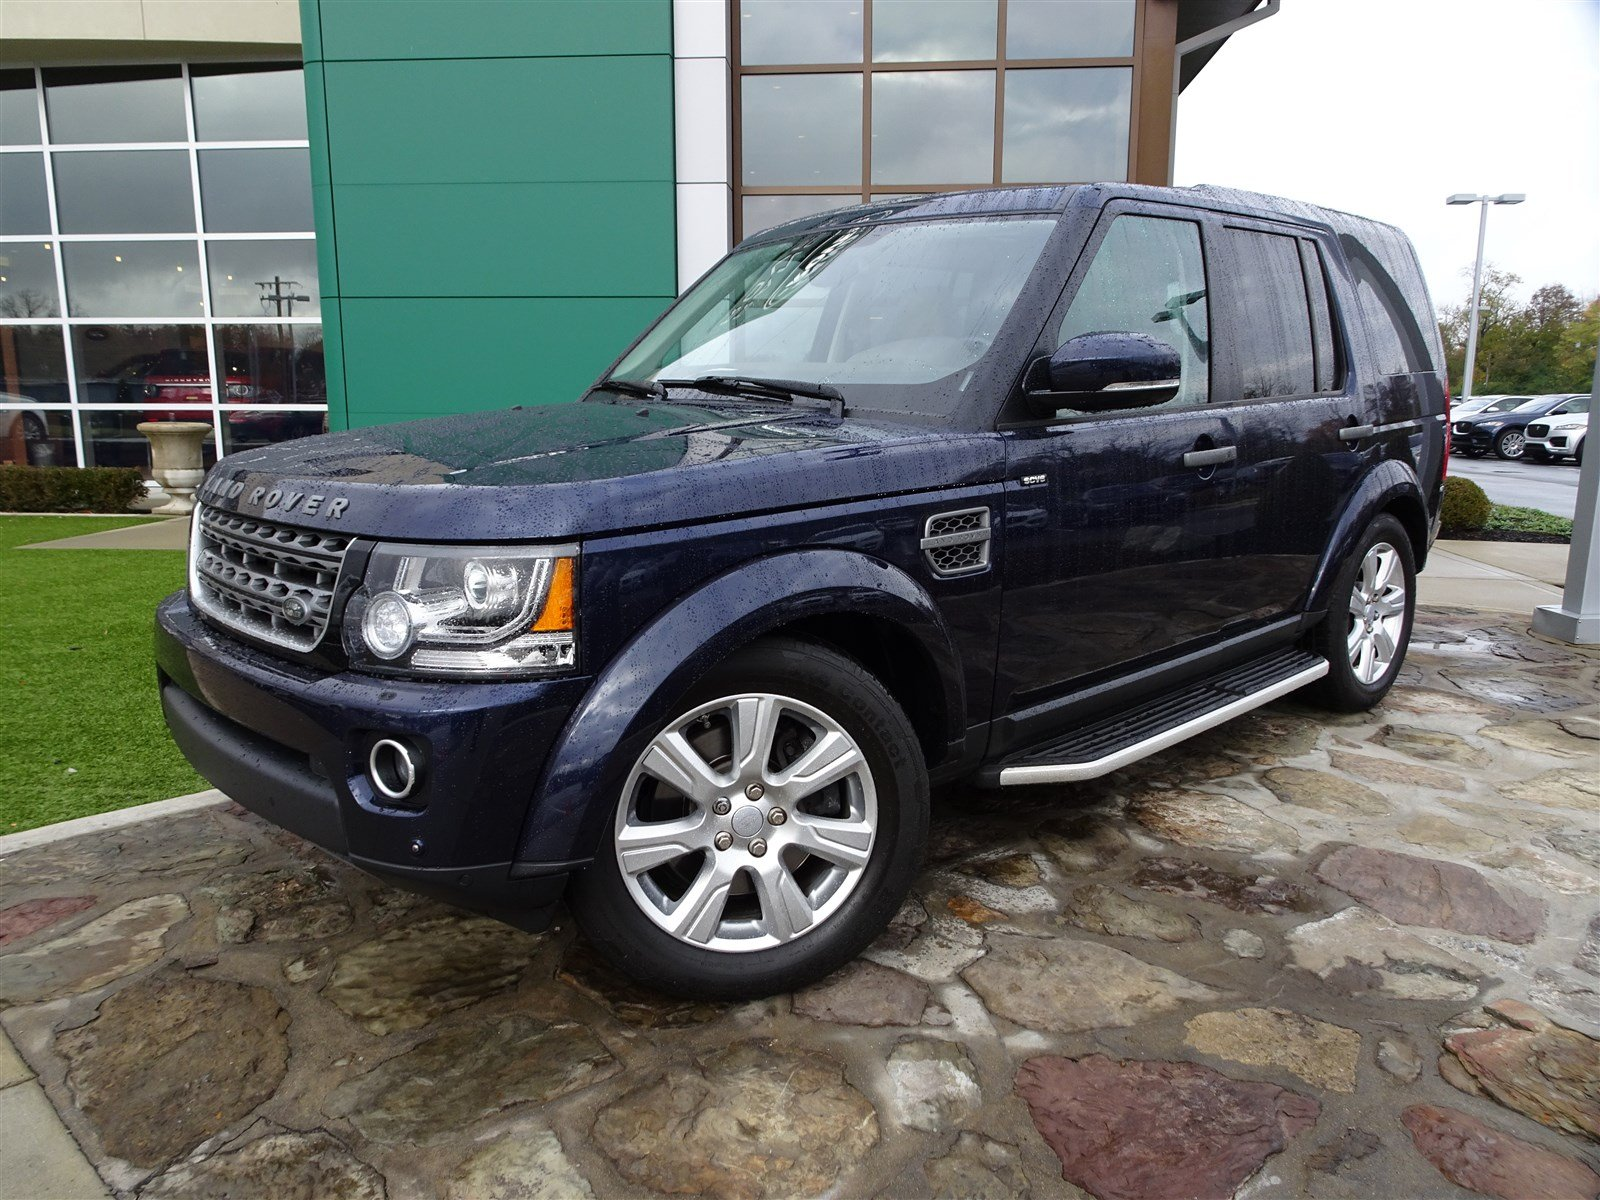 Certified Pre Owned 2016 Land Rover LR4 HSE 4 Door SUV in Cincinnati